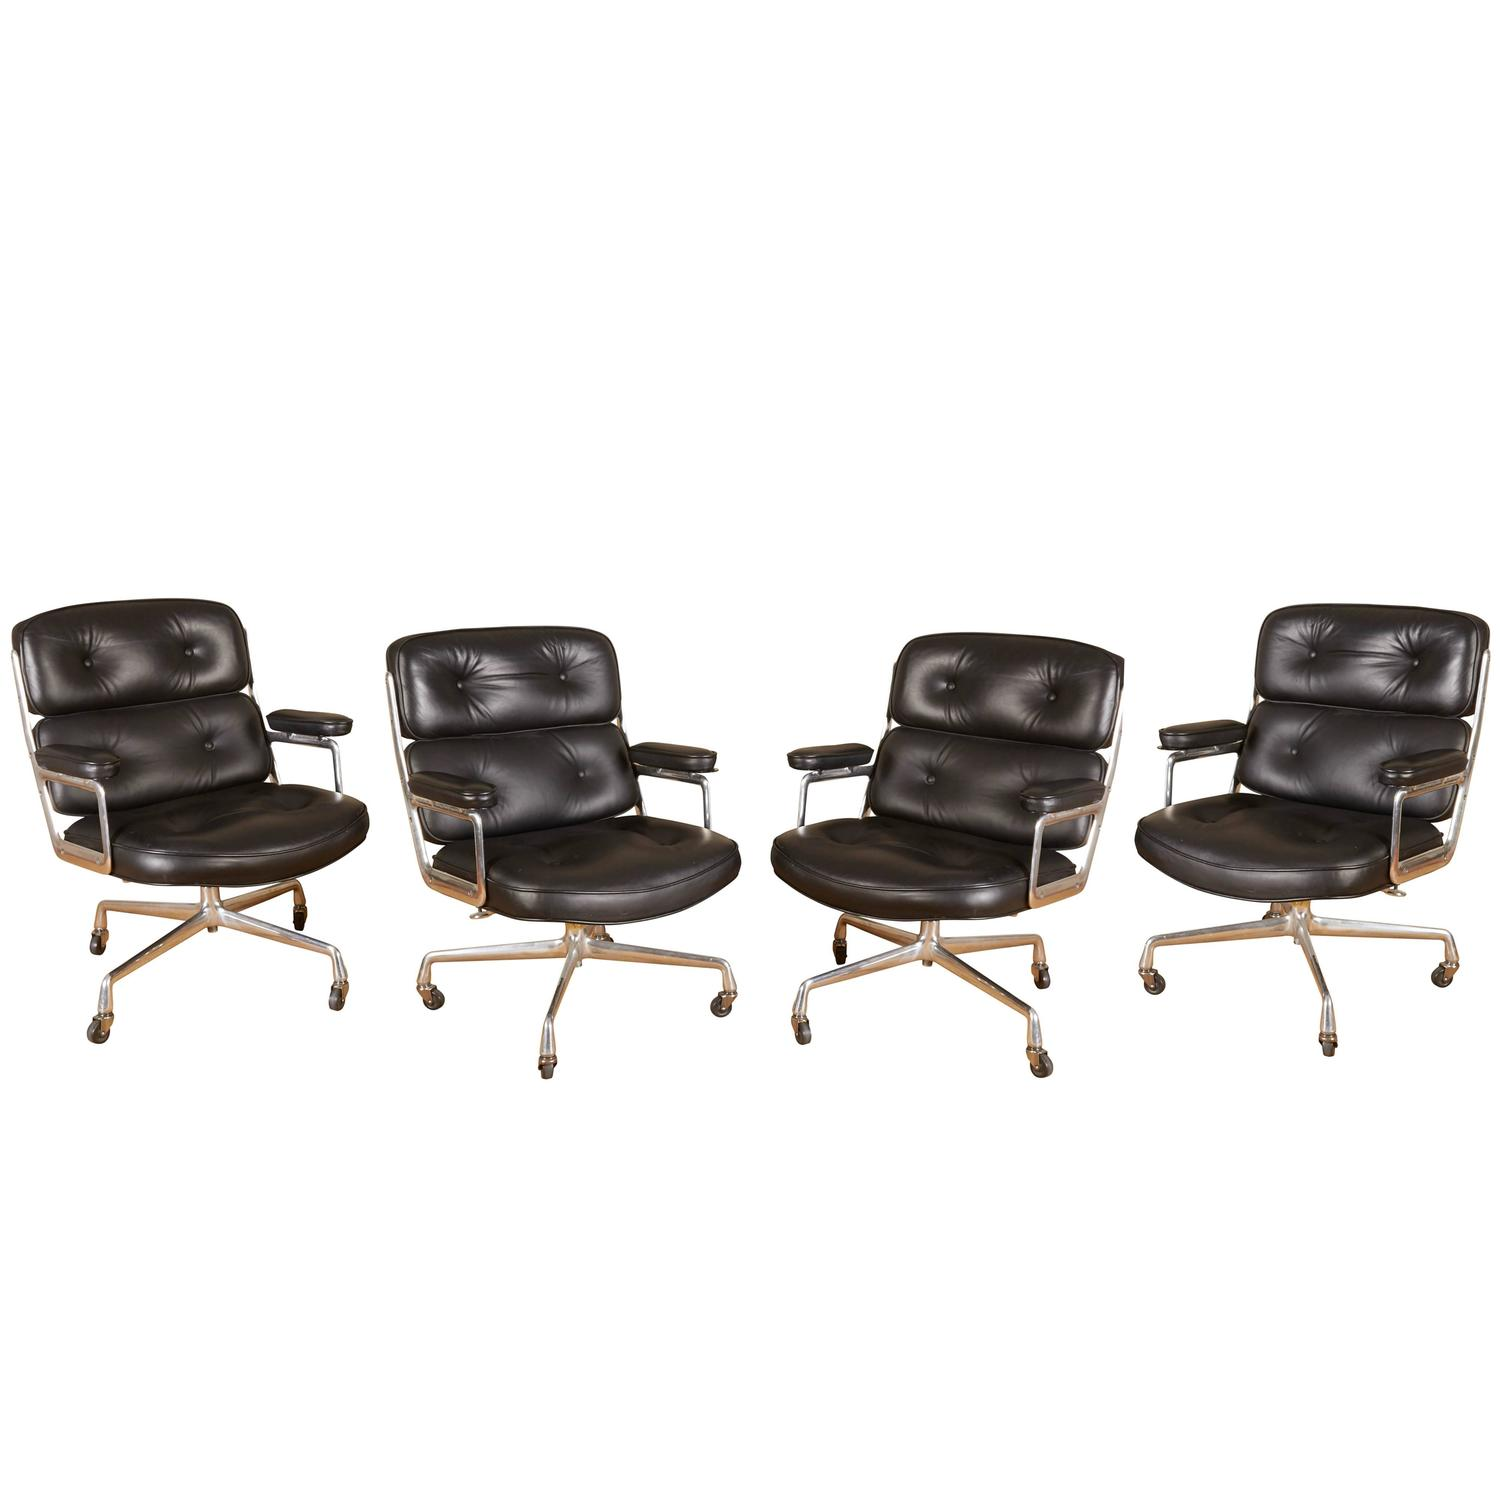 Herman miller task chair - Set Of Four Eames Time Life Executive Chairs For Herman Miller